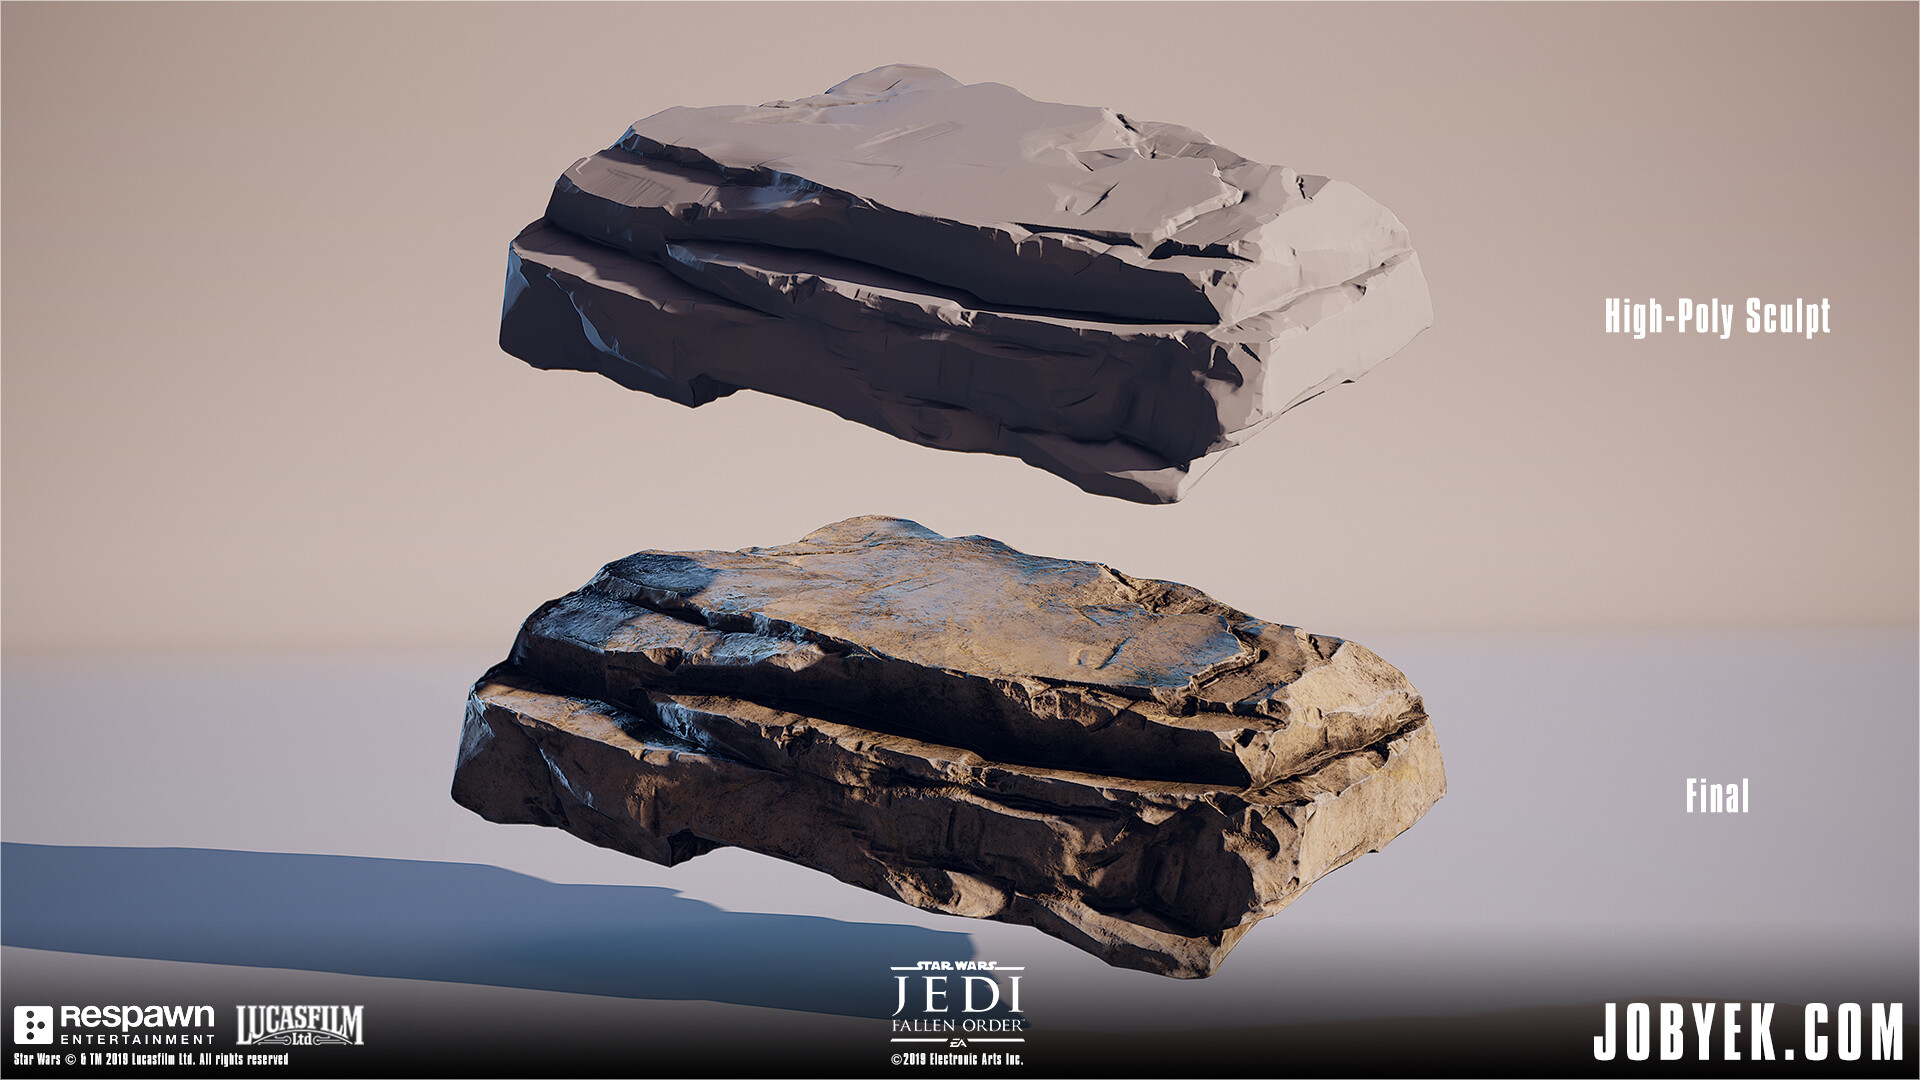 Sculpted & textured these mid-range vista rocks (never get up close)